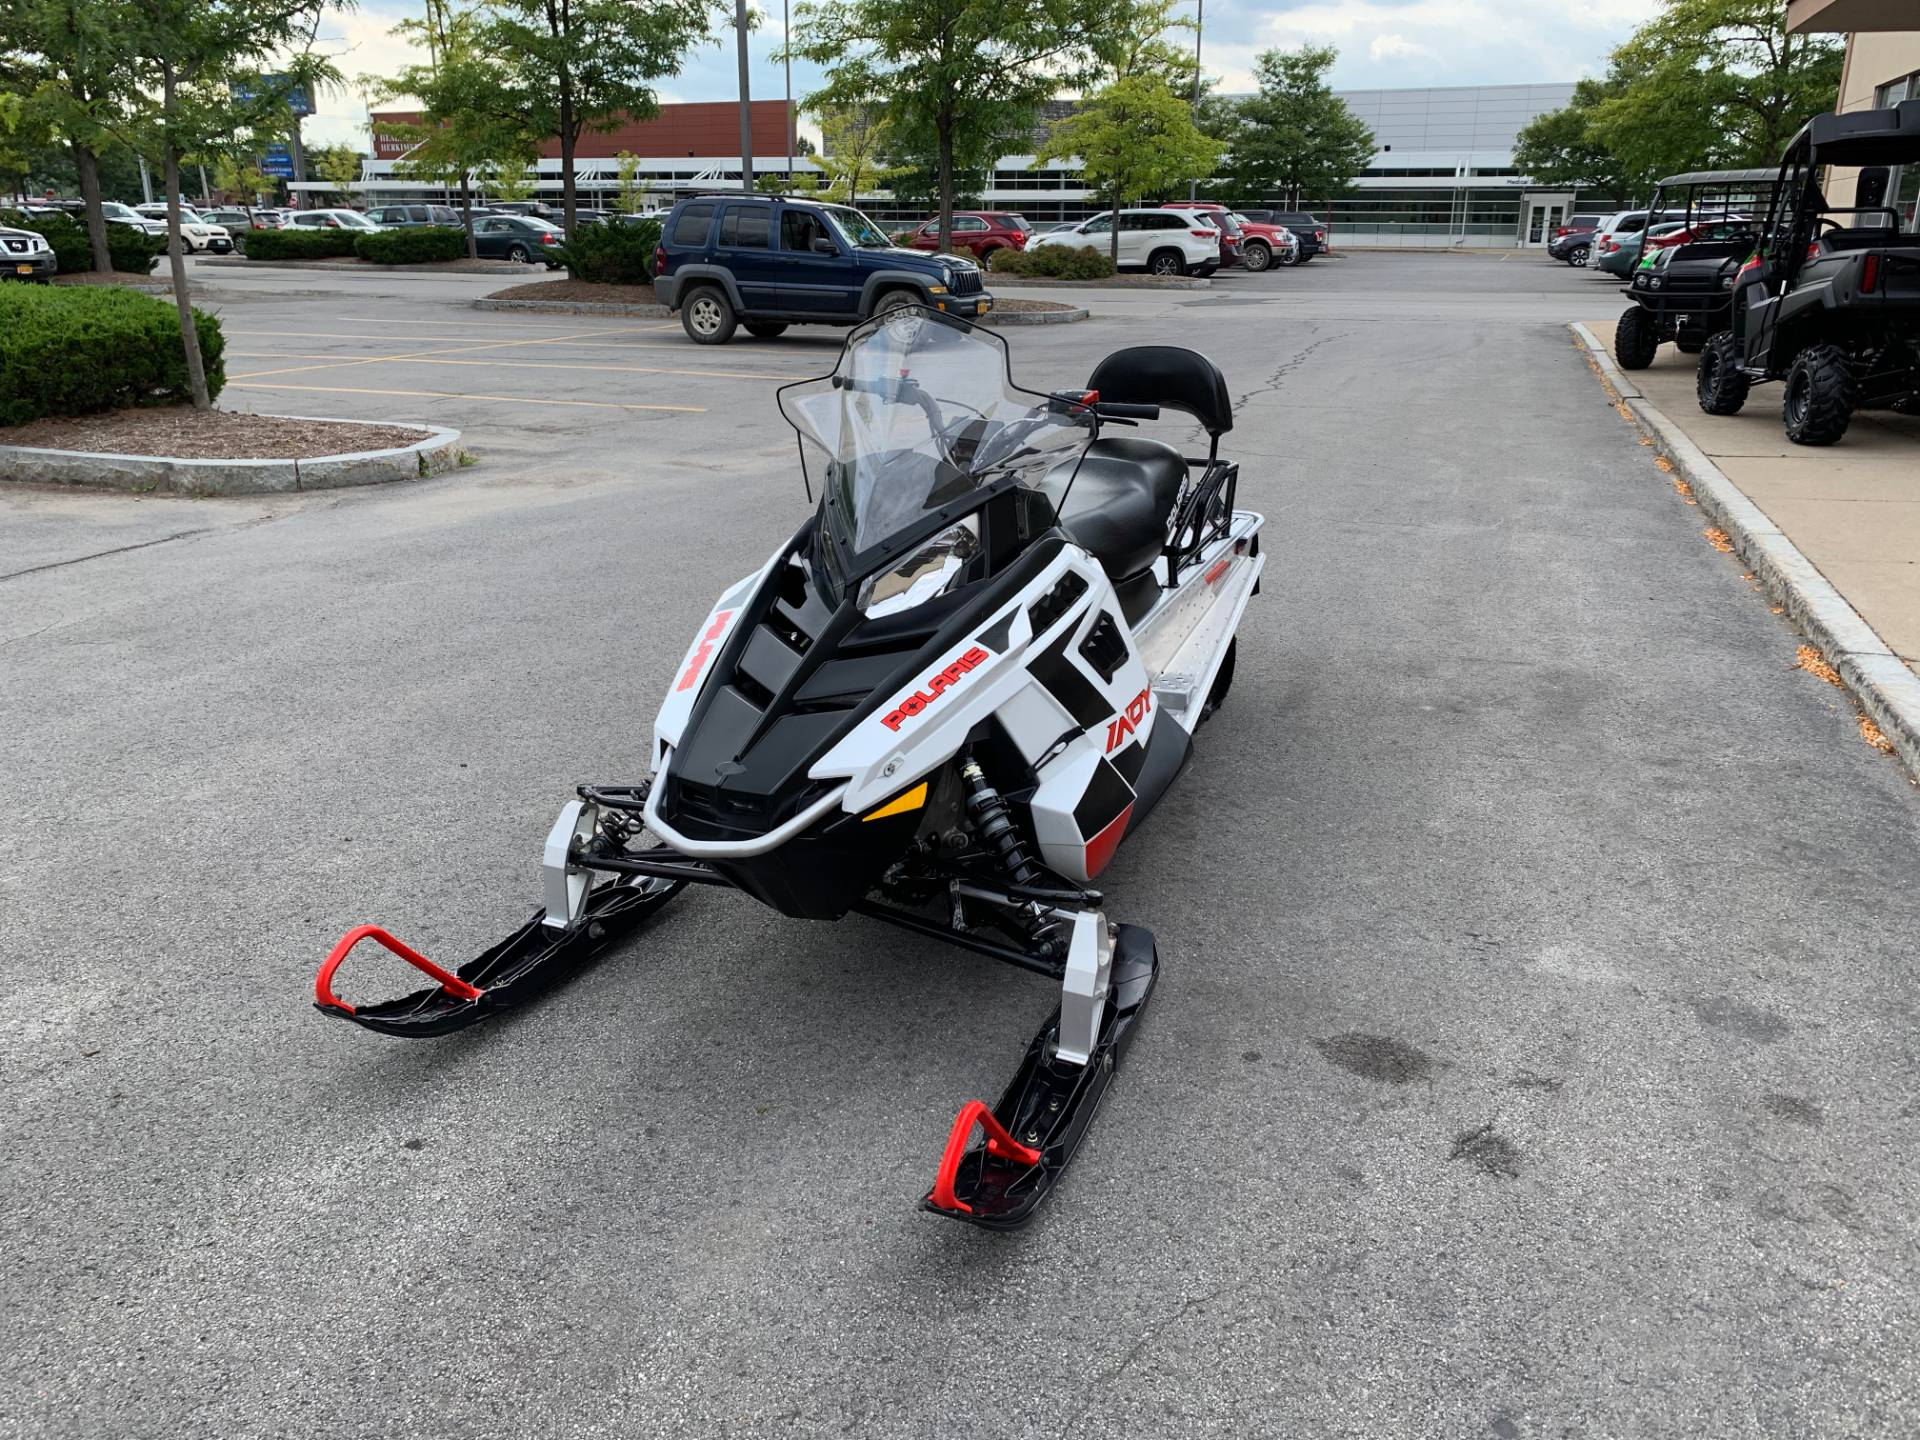 2019 Polaris 550 INDY LXT ES in Herkimer, New York - Photo 6